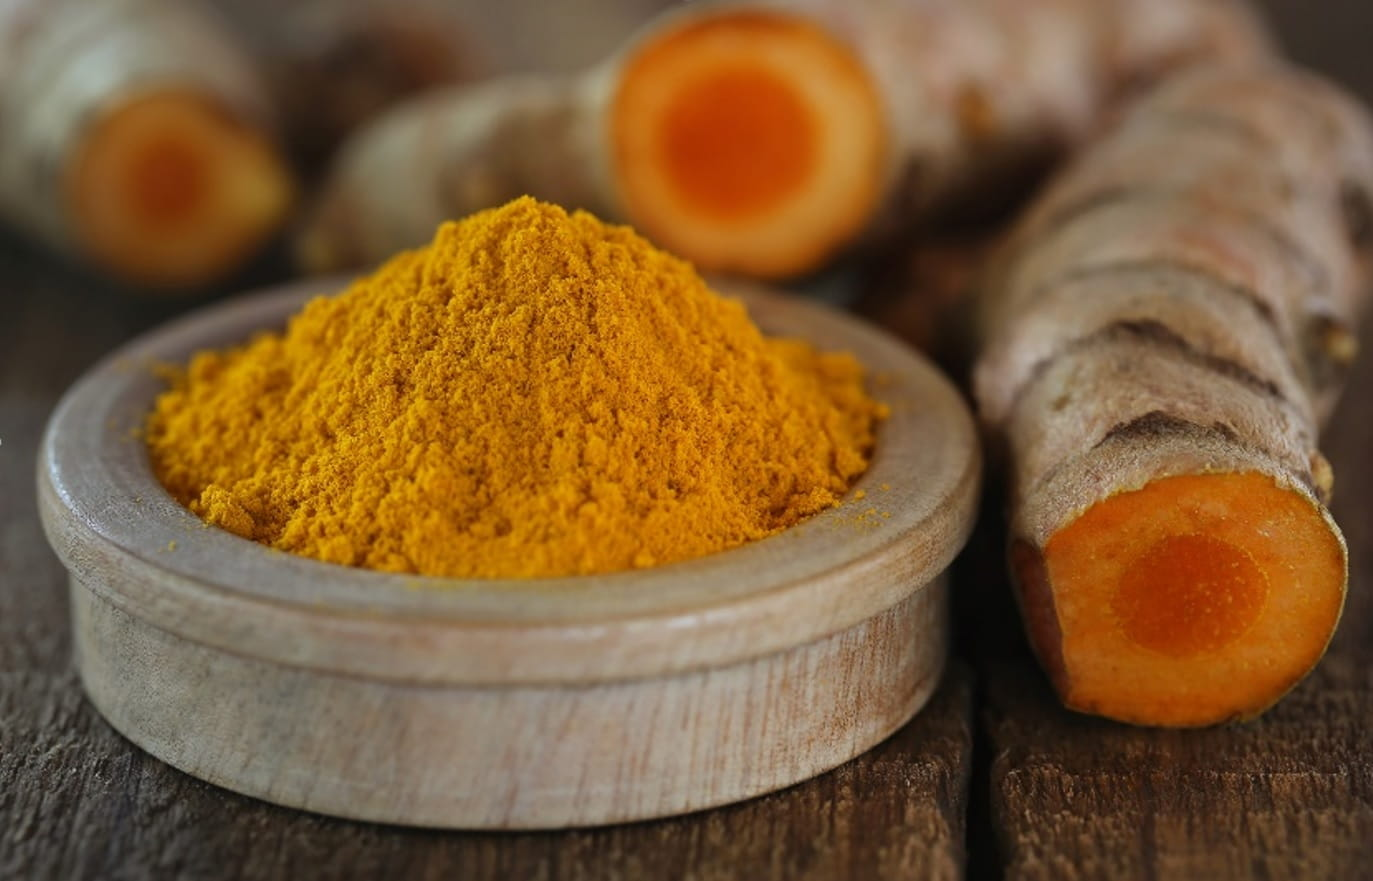 MSI Funded Paper: Potential Health Benefits of Turmeric